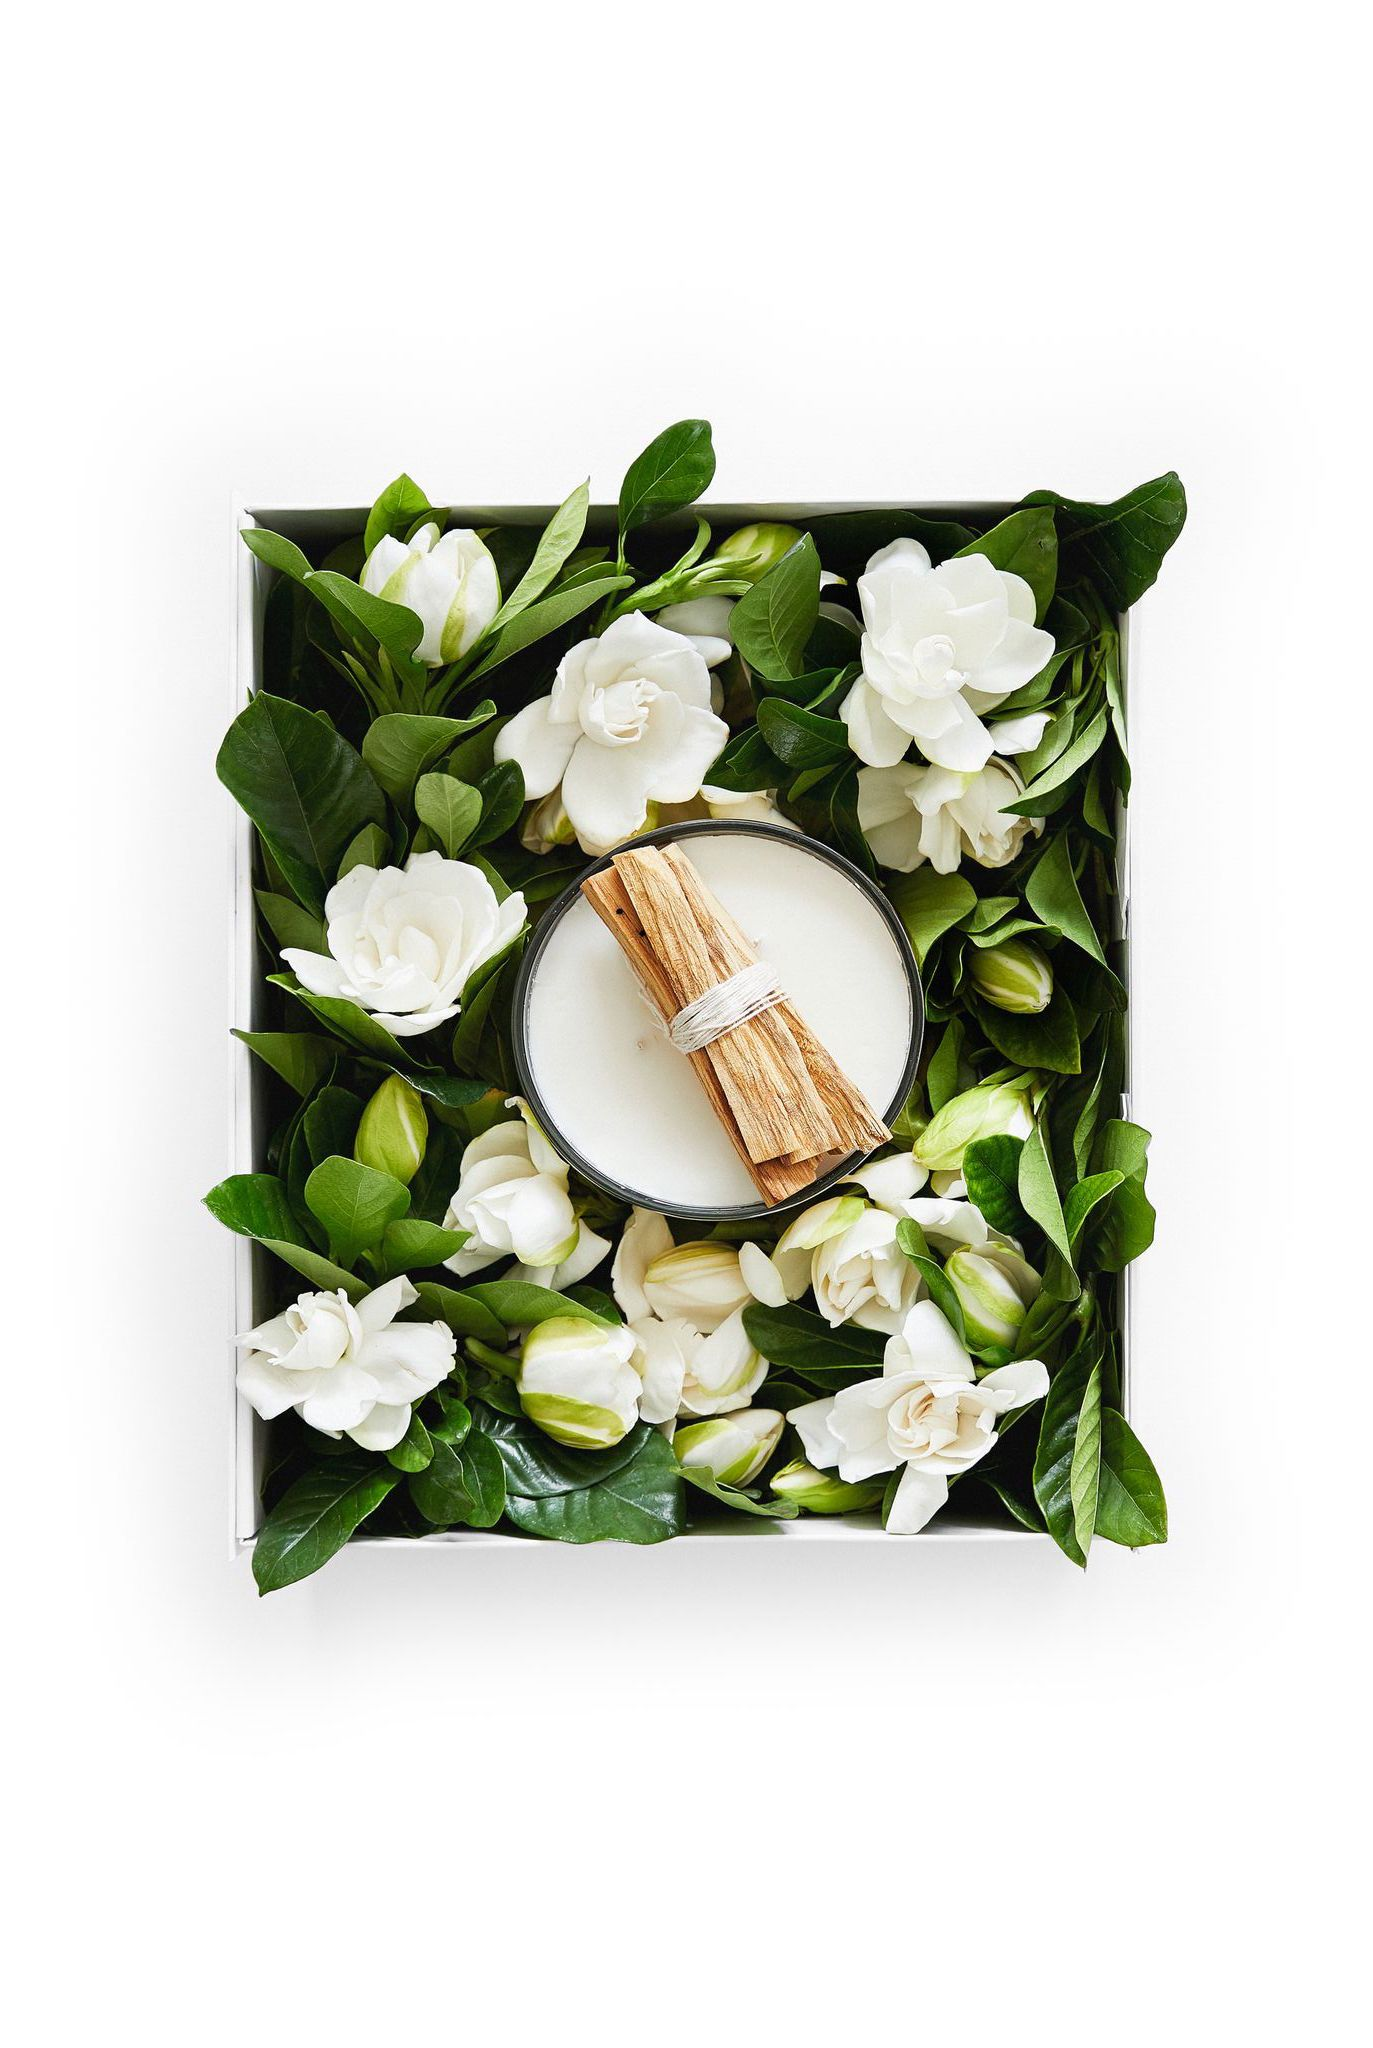 High Camp Gardenias High Camp S Signature Gardenia And Palo Santo Candle Captures The Essence Of Gardenias F Gardenia Luxury Garden Luxury Flower Arrangement